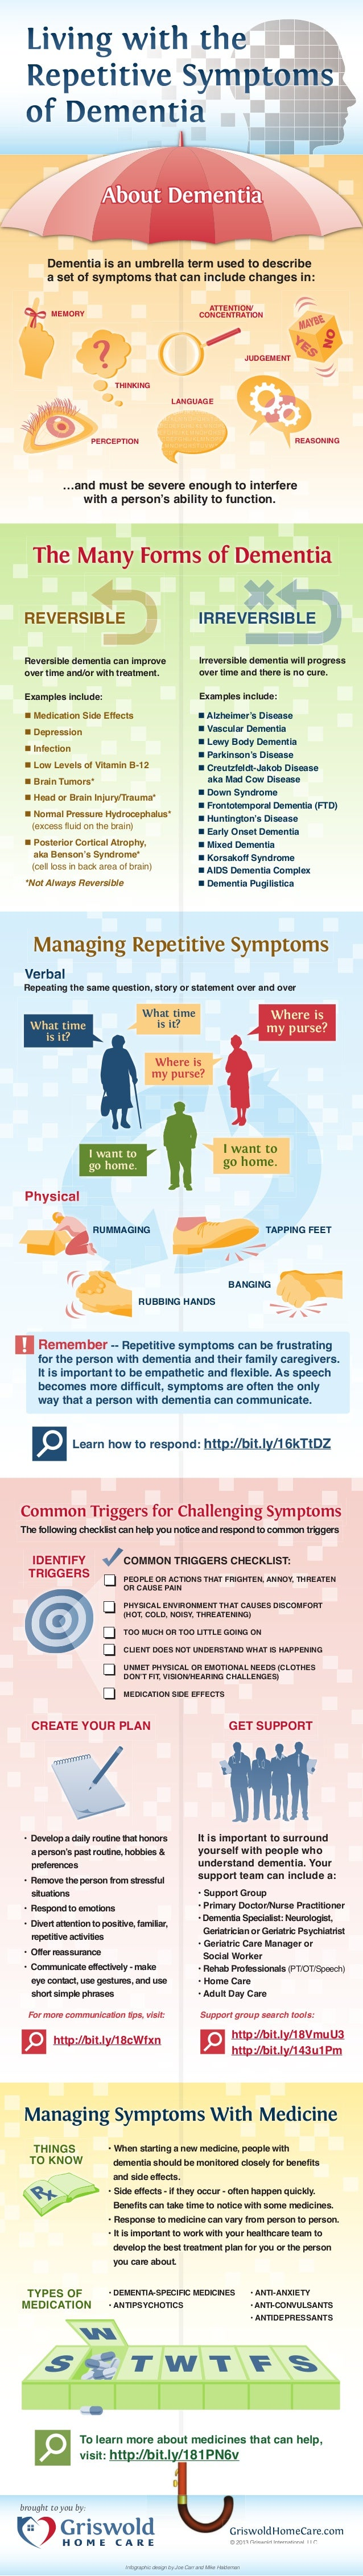 [Infographic] Living with the Repetitive Symptoms of Dementia